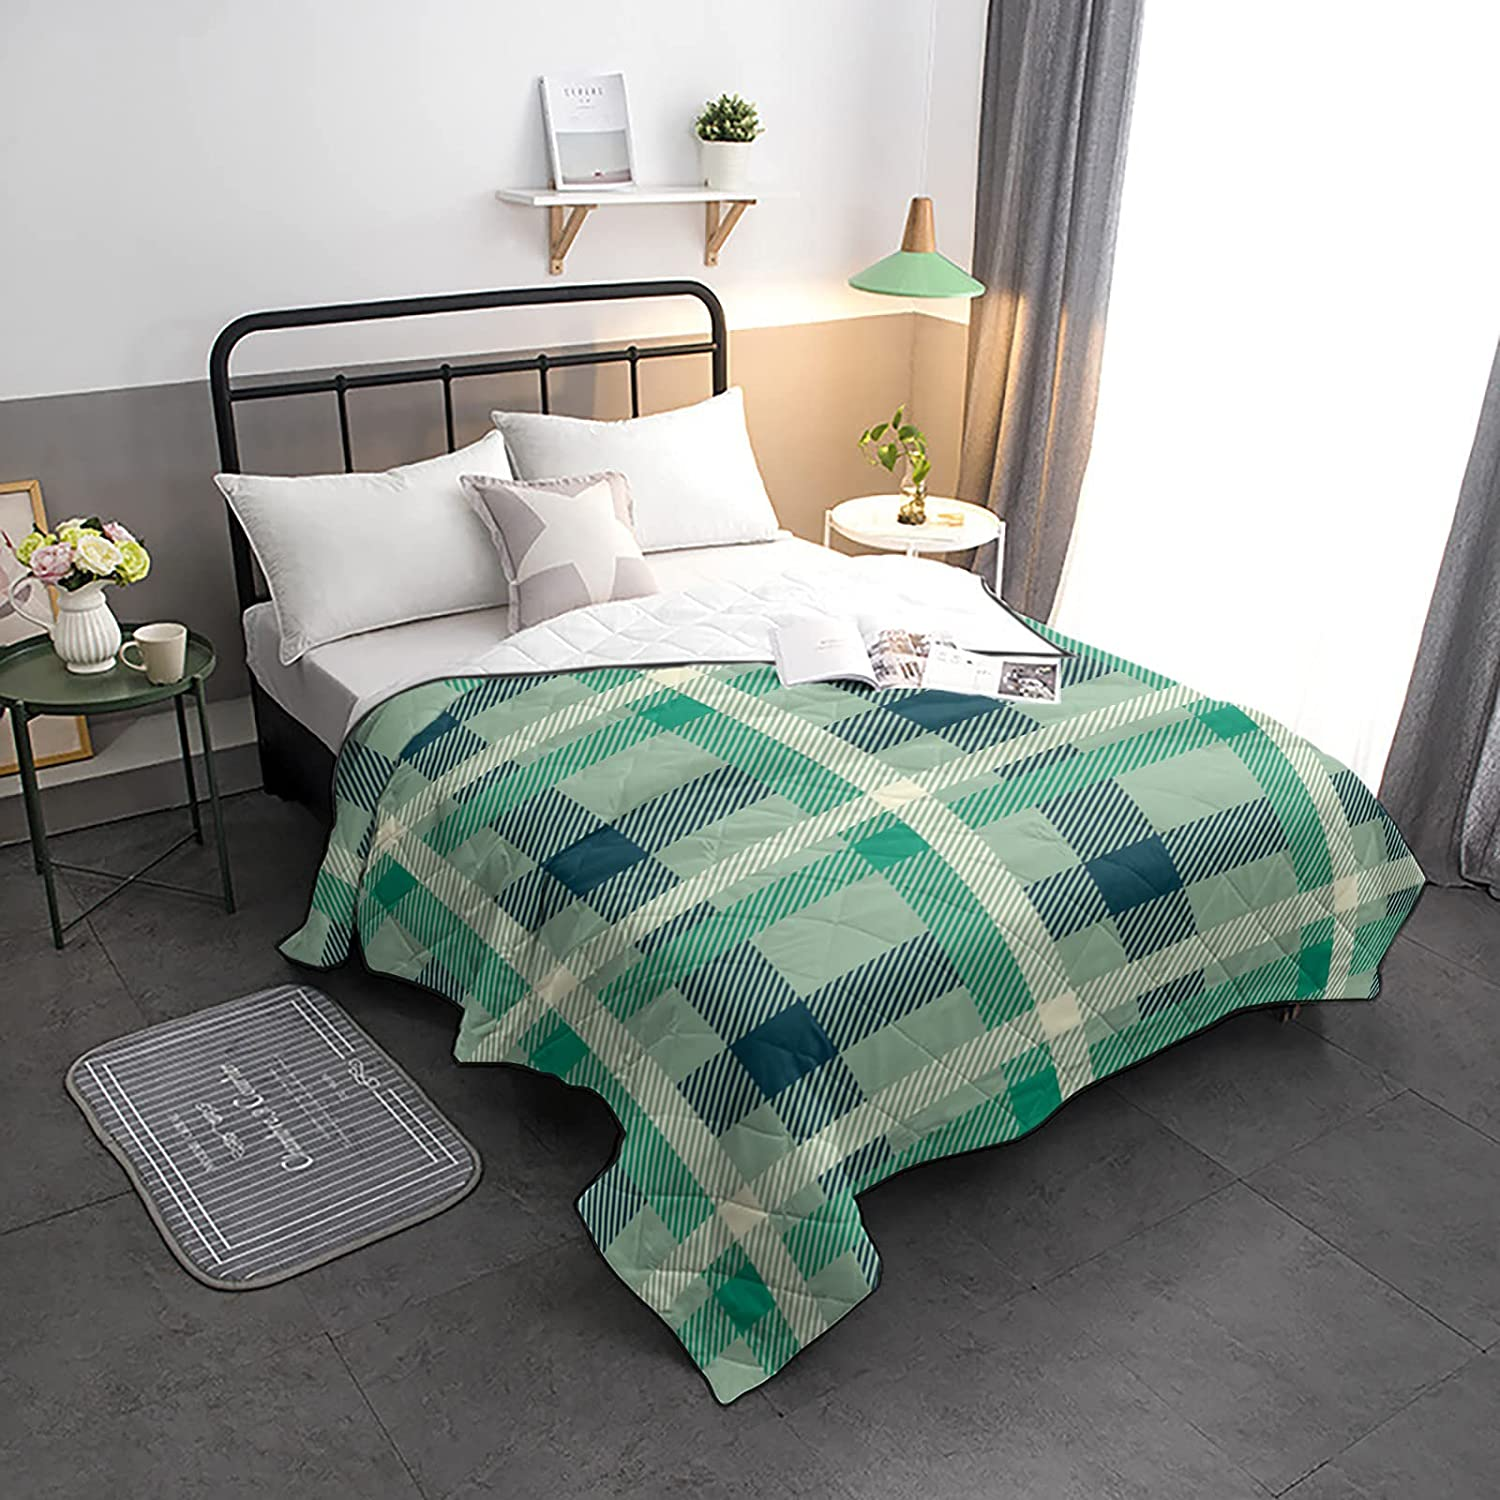 HELLOWINK Bedding Challenge the lowest price Comforter low-pricing Duvet Qu Lighweight Twin Size-Soft